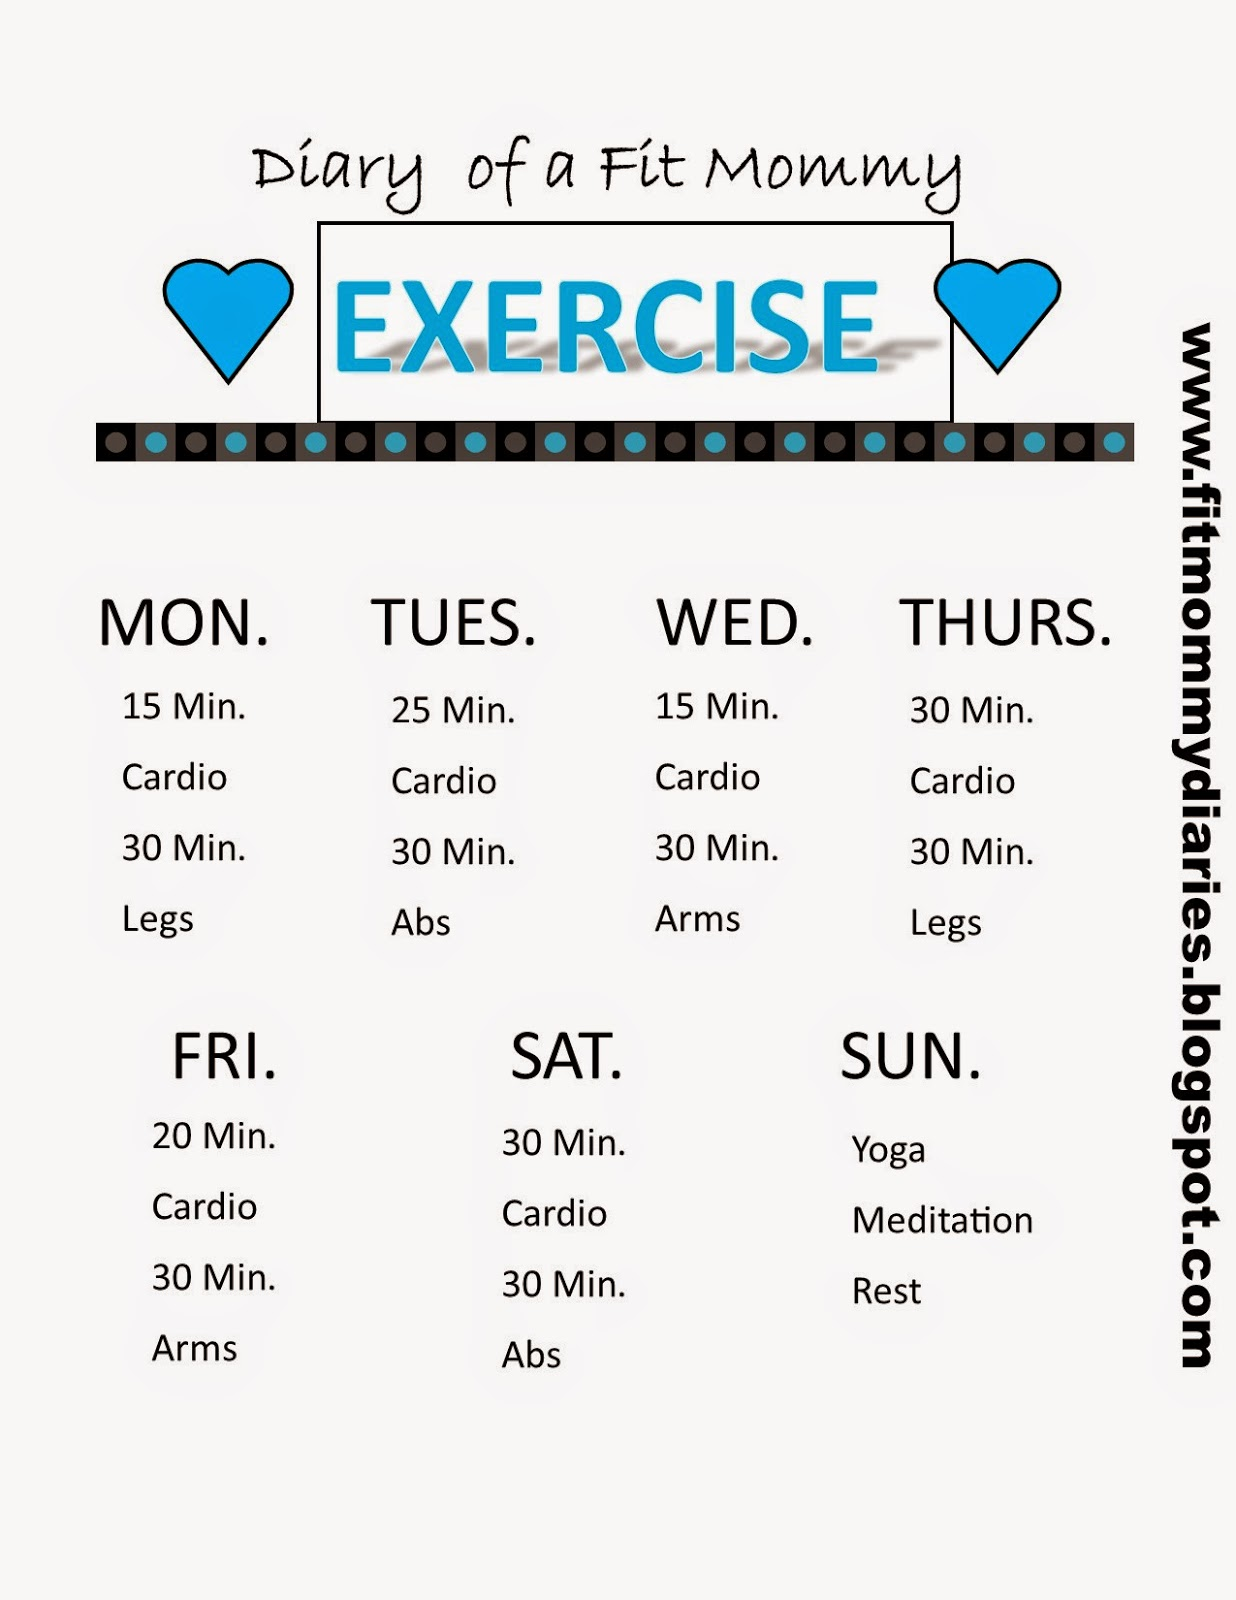 Your *NEW* Weekly Workout: You Pick!